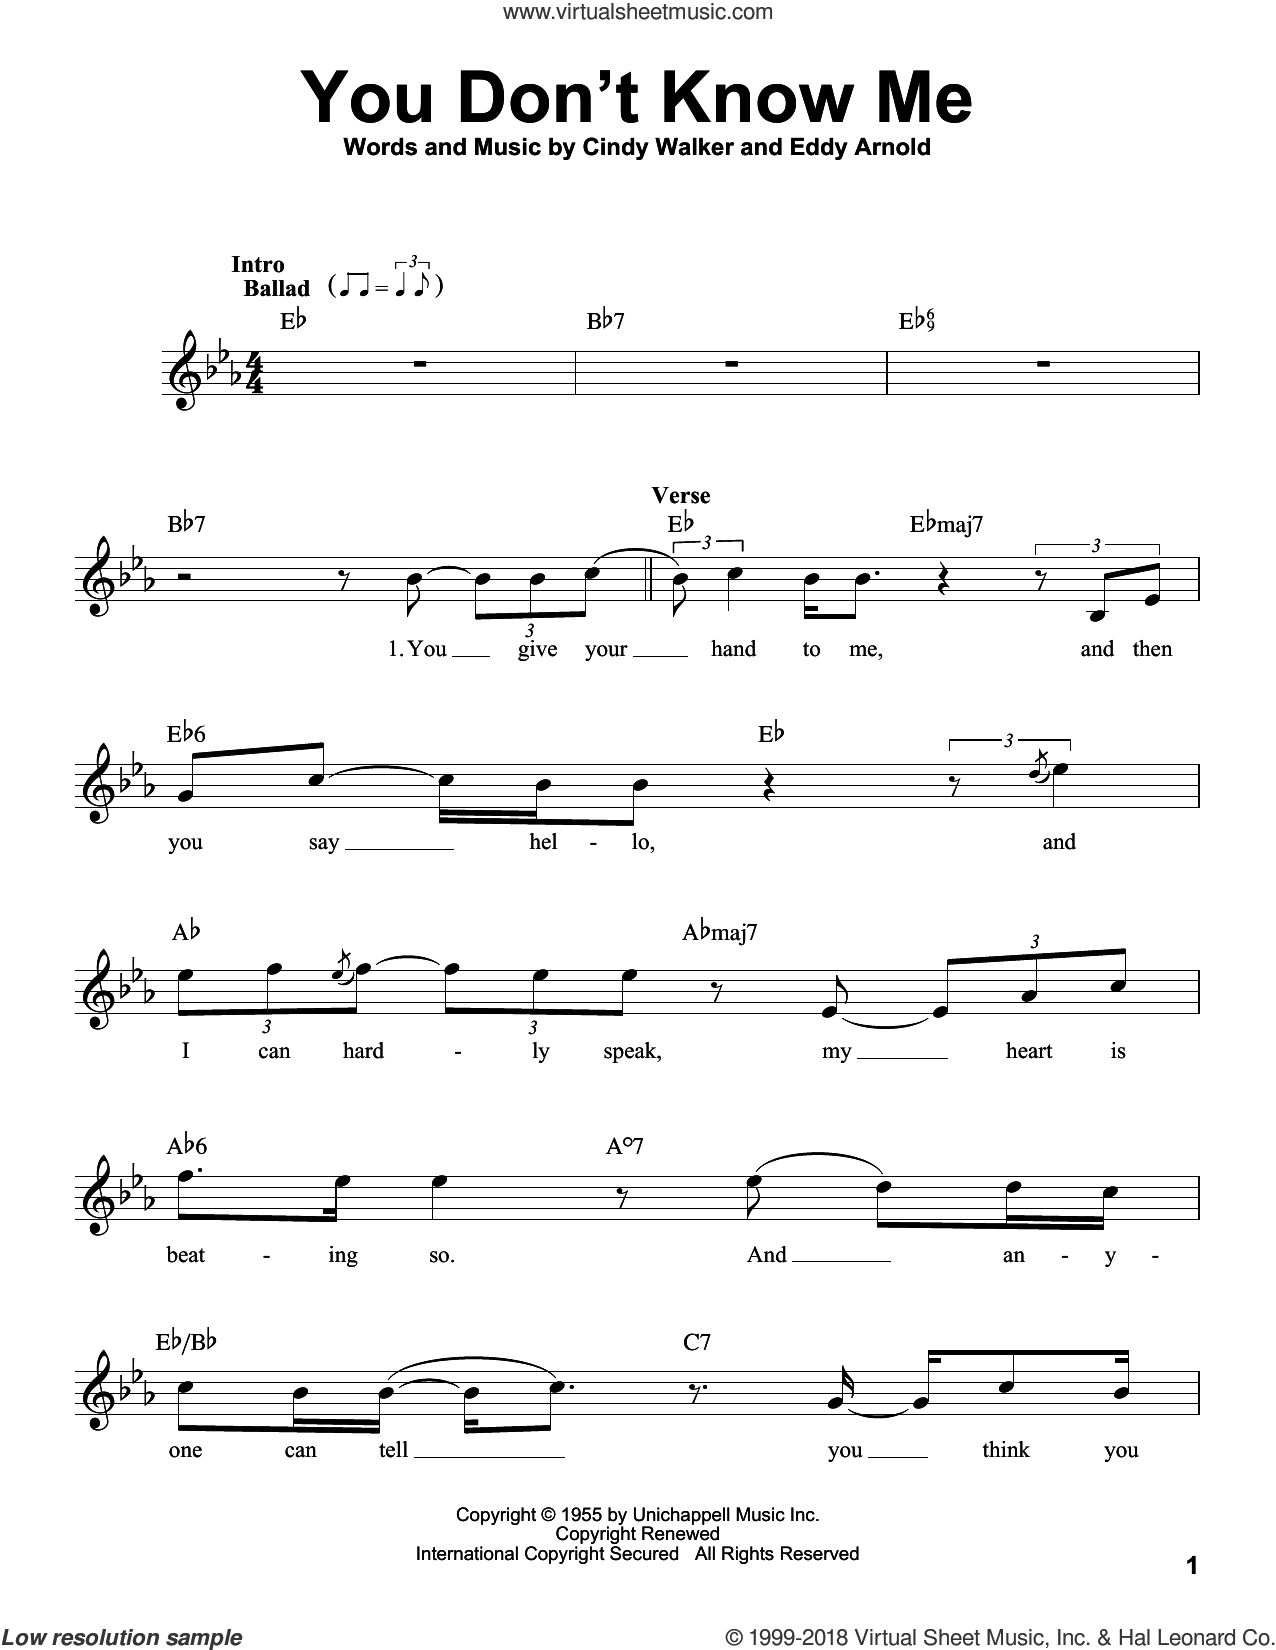 You Don't Know Me sheet music for voice solo by Ray Charles and Cindy Walker, intermediate skill level